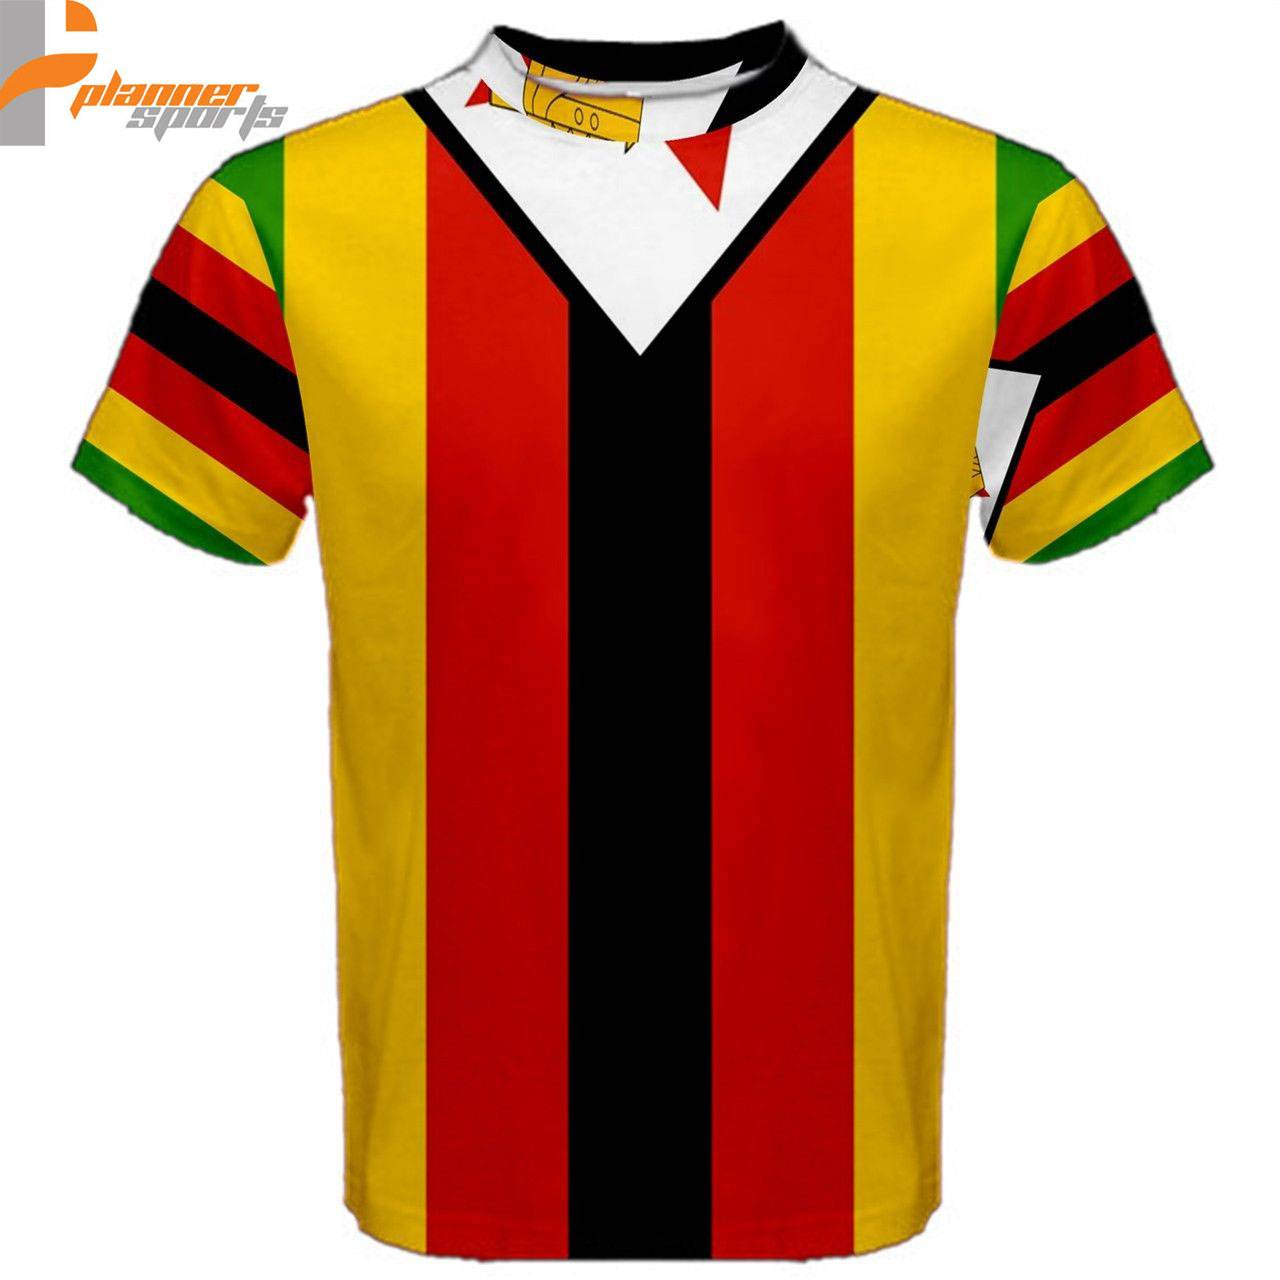 Zimbabwe Flag Sublimated Sublimation T-Shirt S,M,L,XL,2XL,3XL